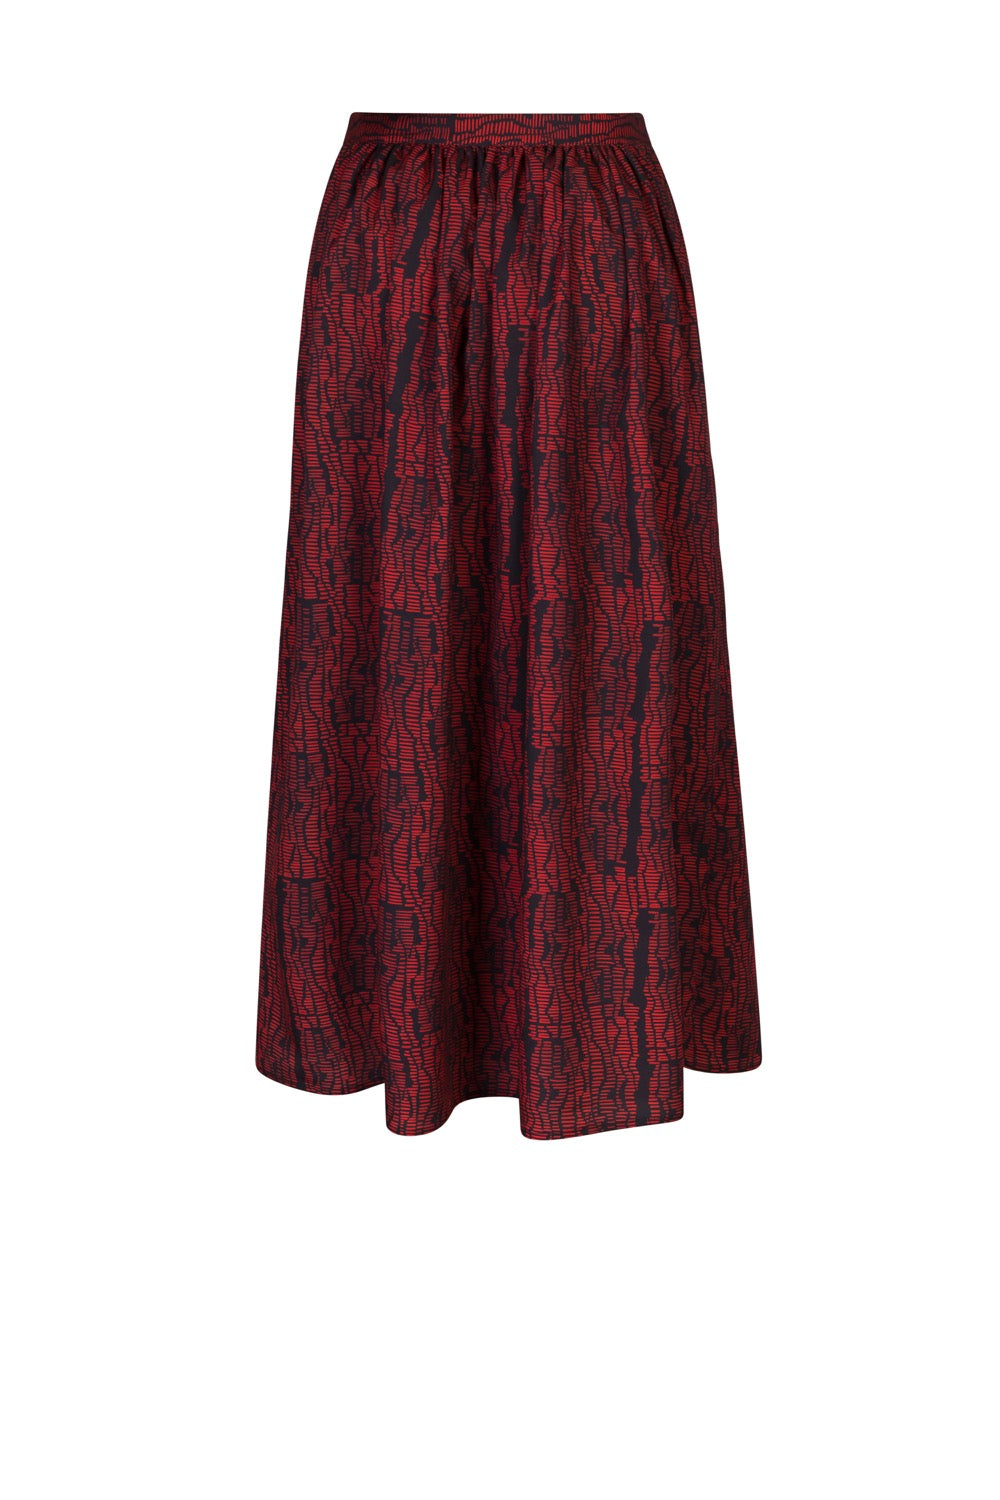 Orso skirt in strates print